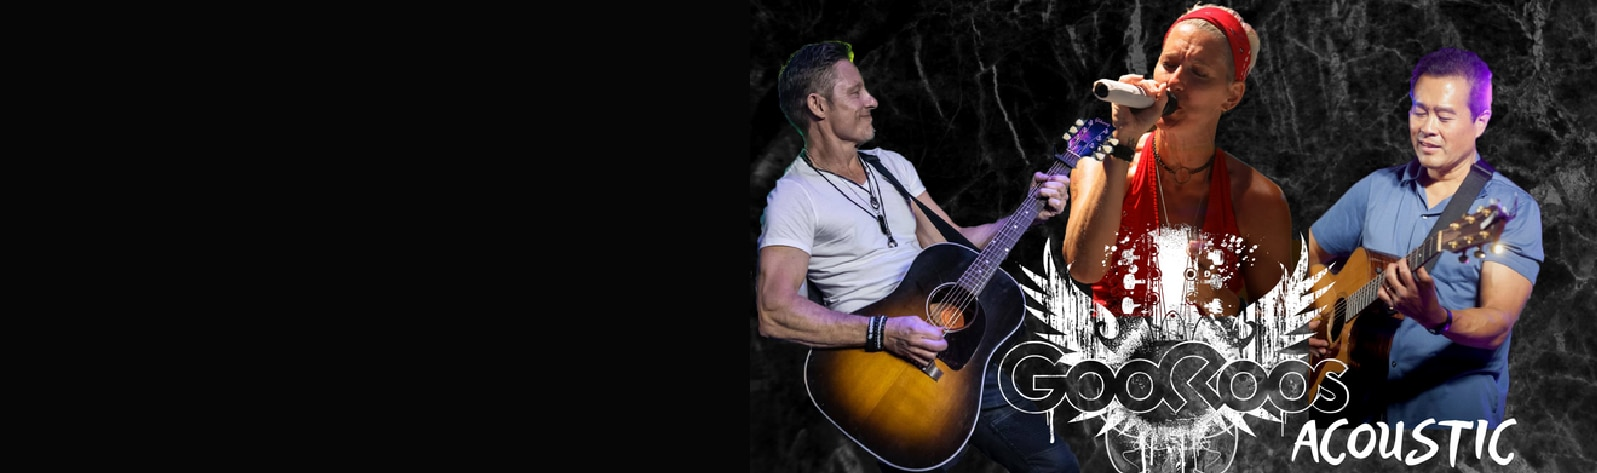 Music Under the Trees - Wed., July 28 from6:00 pm – 9:00 pm